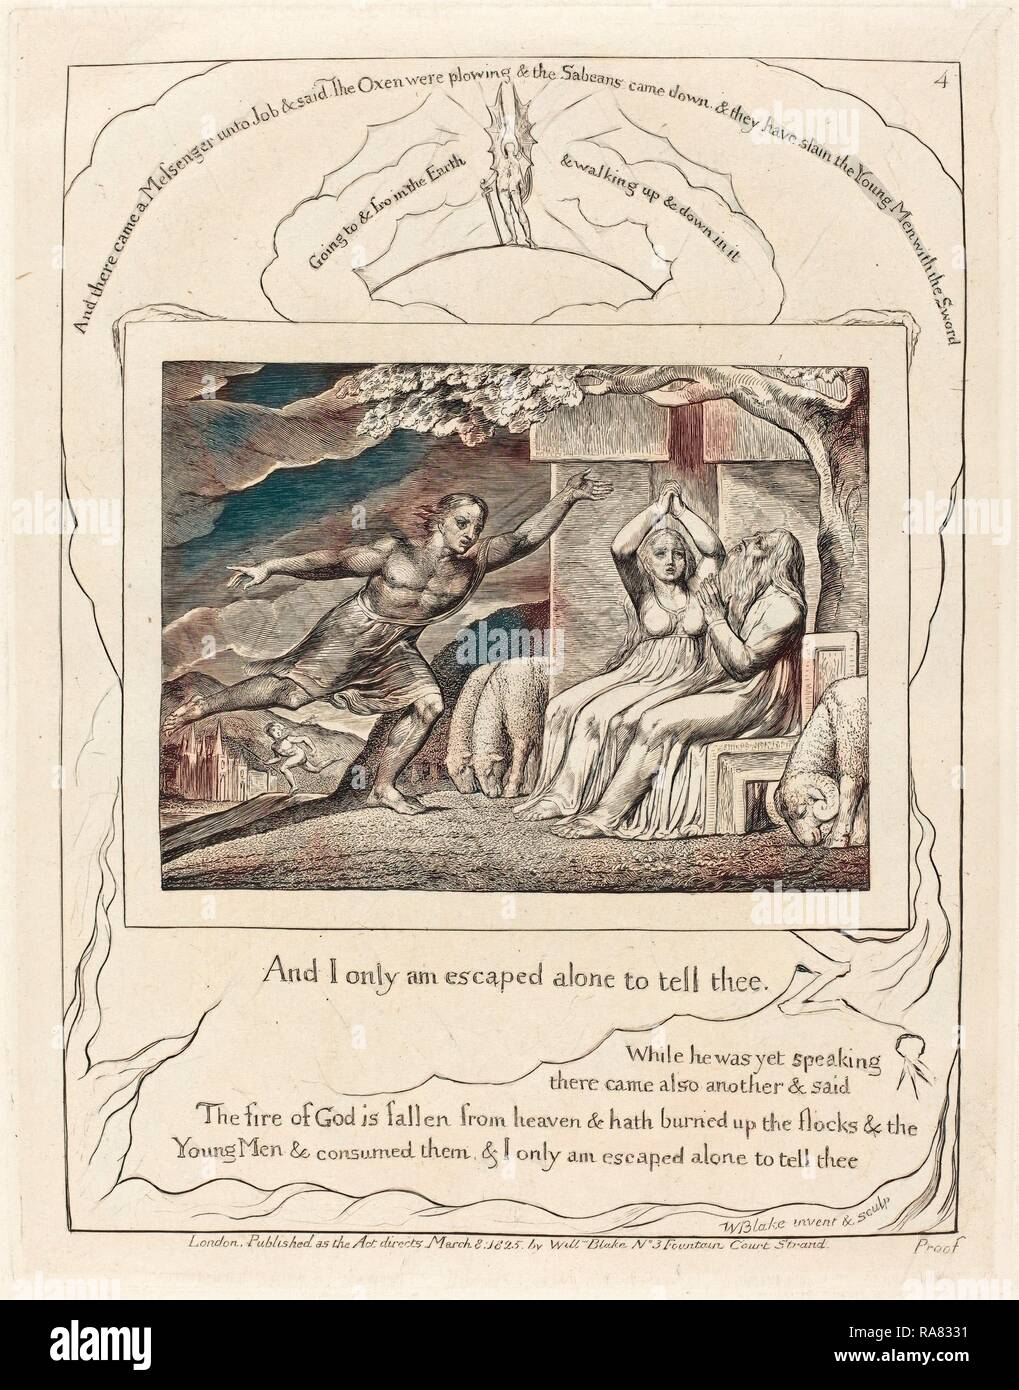 William Blake (British, 1757 - 1827), The Messengers Tell Job of His Misfortunes, 1825, engraving on India paper reimagined - Stock Image